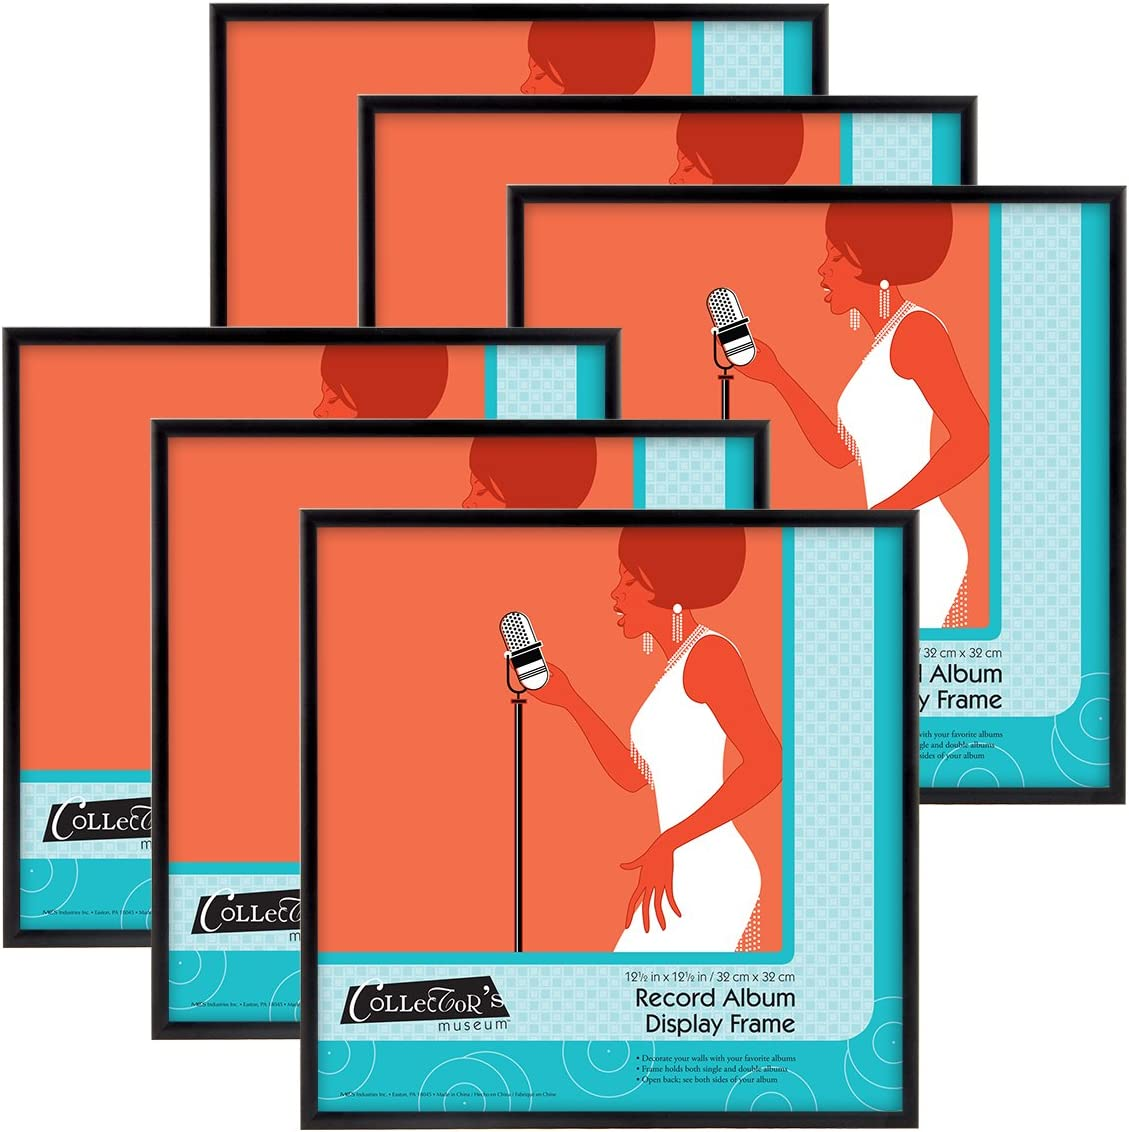 MCS 65506 Gallery Aluminum Album Cover Frame, 6 Pack, Anodized Black(Pack of 6), 6 Count